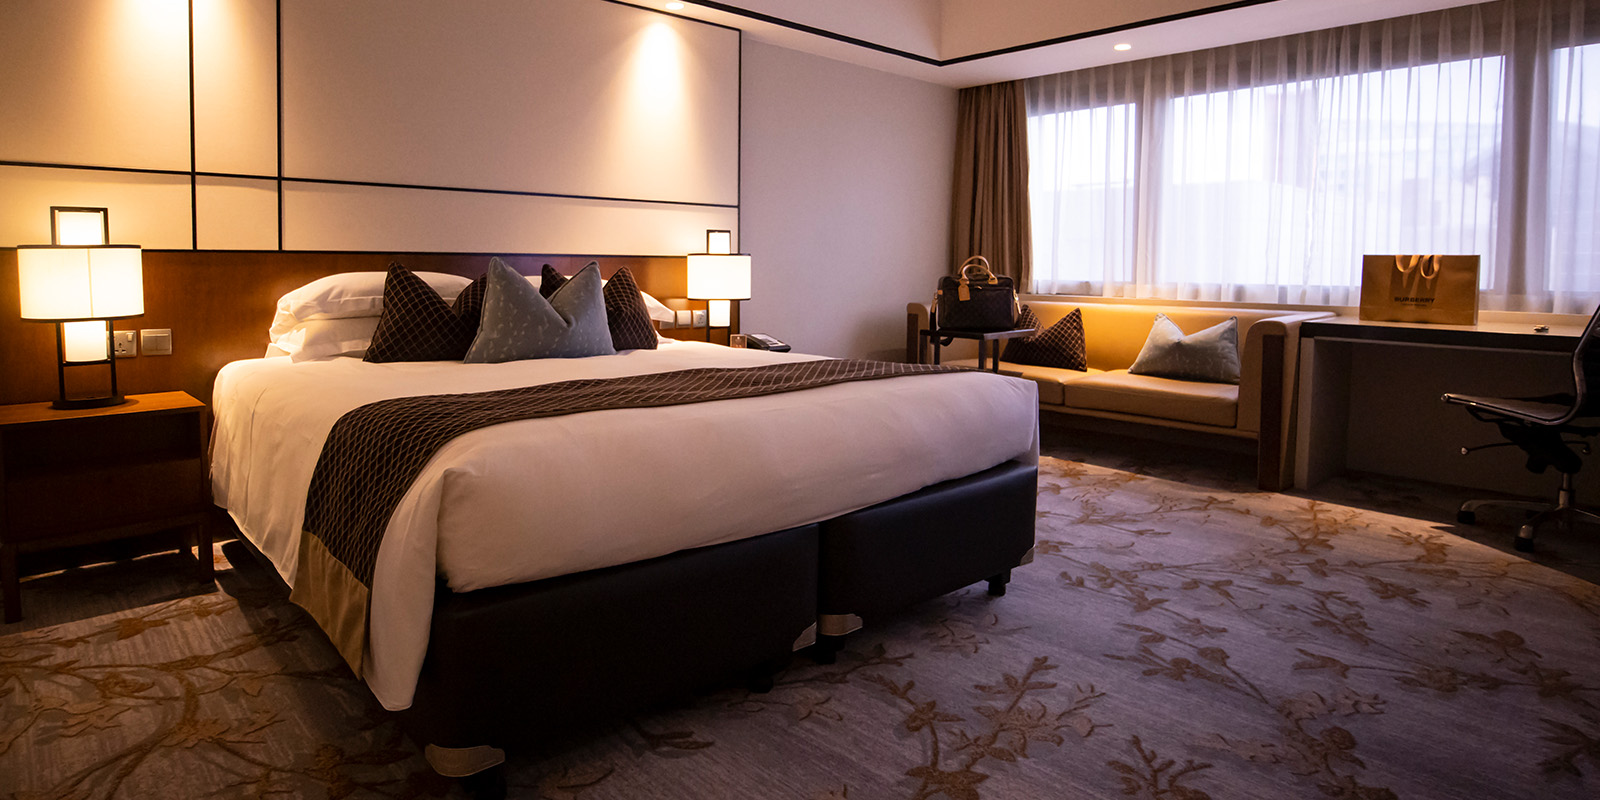 World Class Asian Hospitality in The Heart of Orchard, Singapore